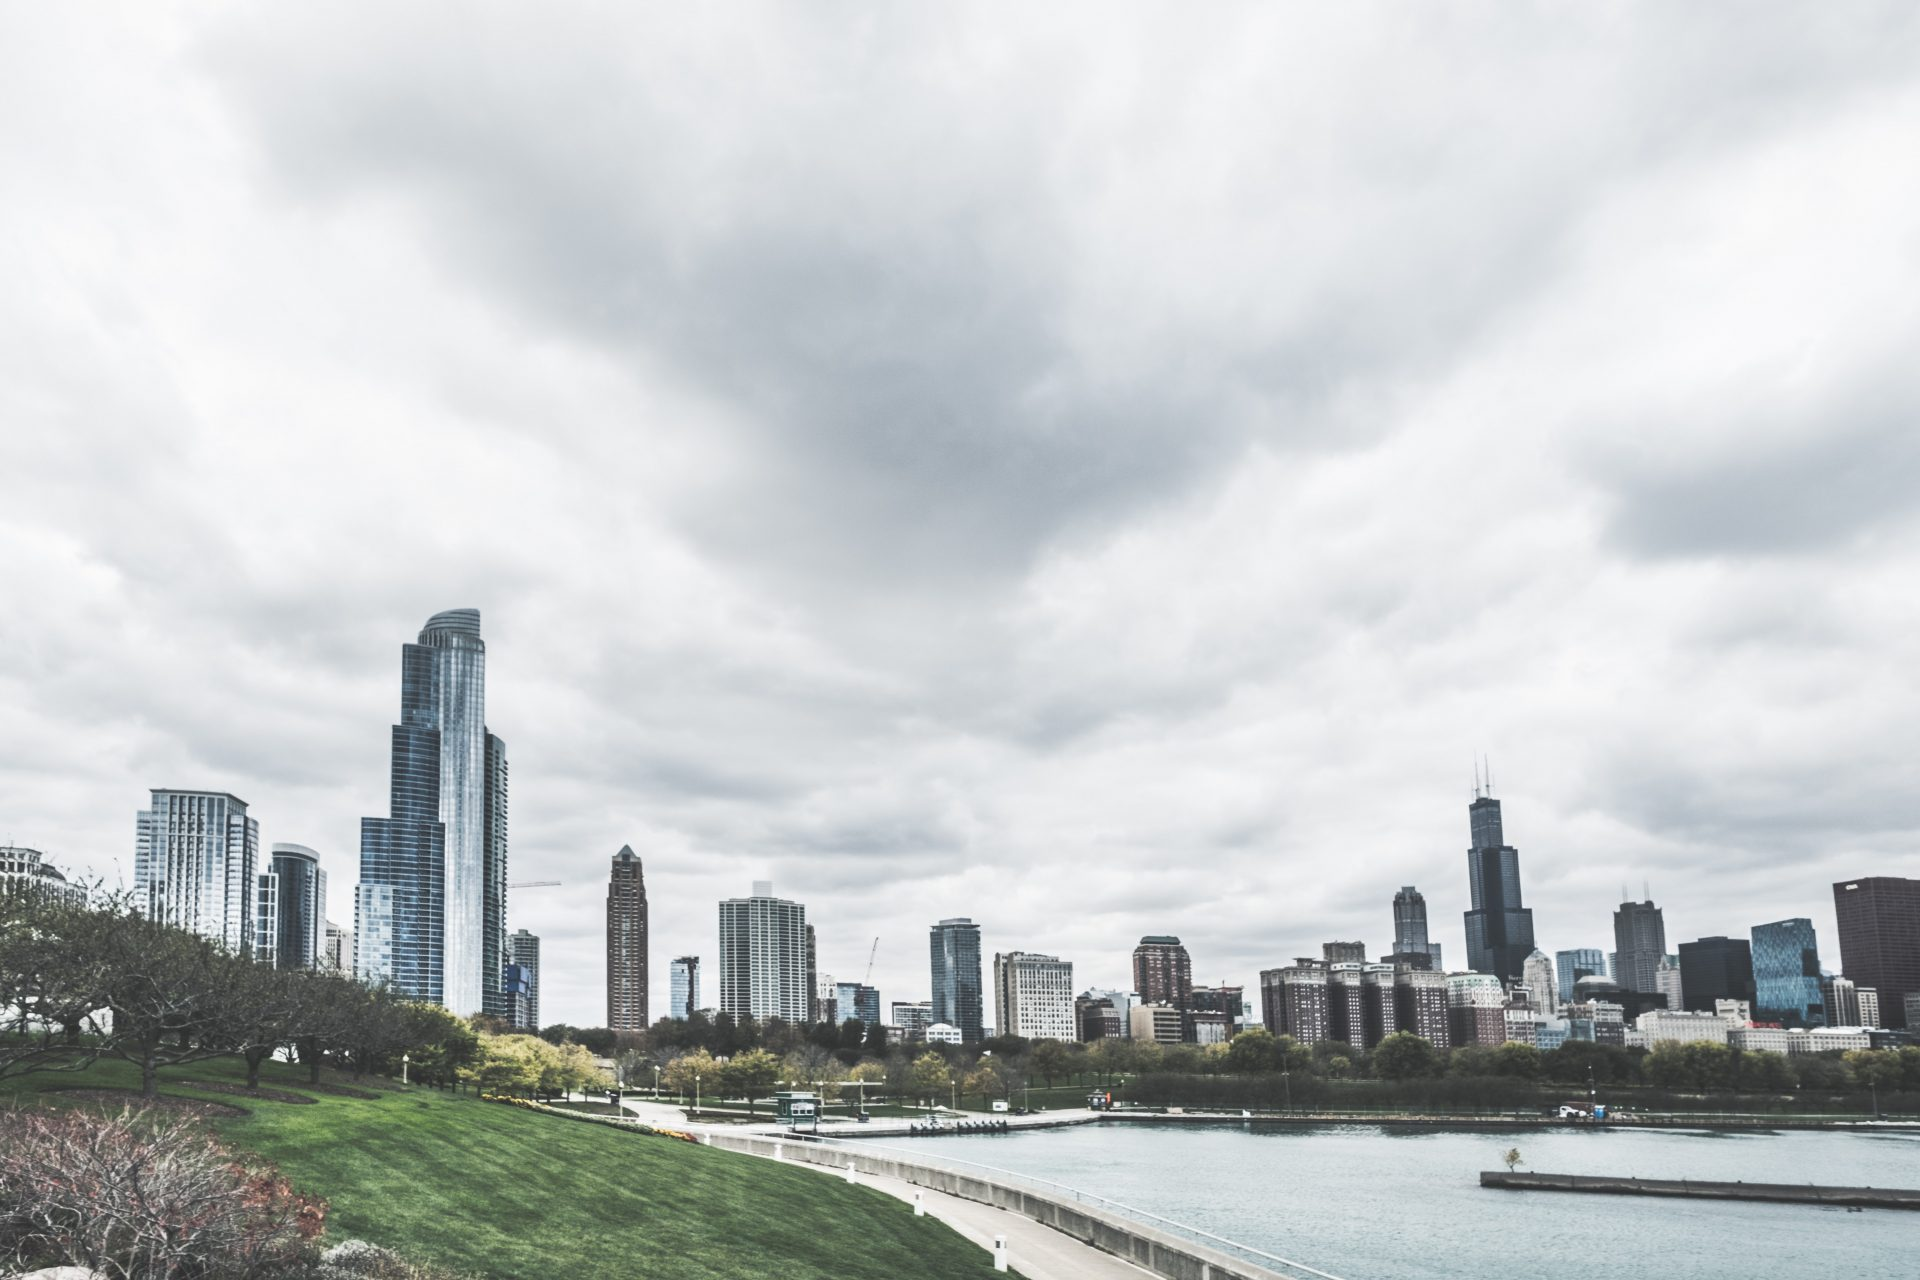 View of Chicago's skyline from the South Loop